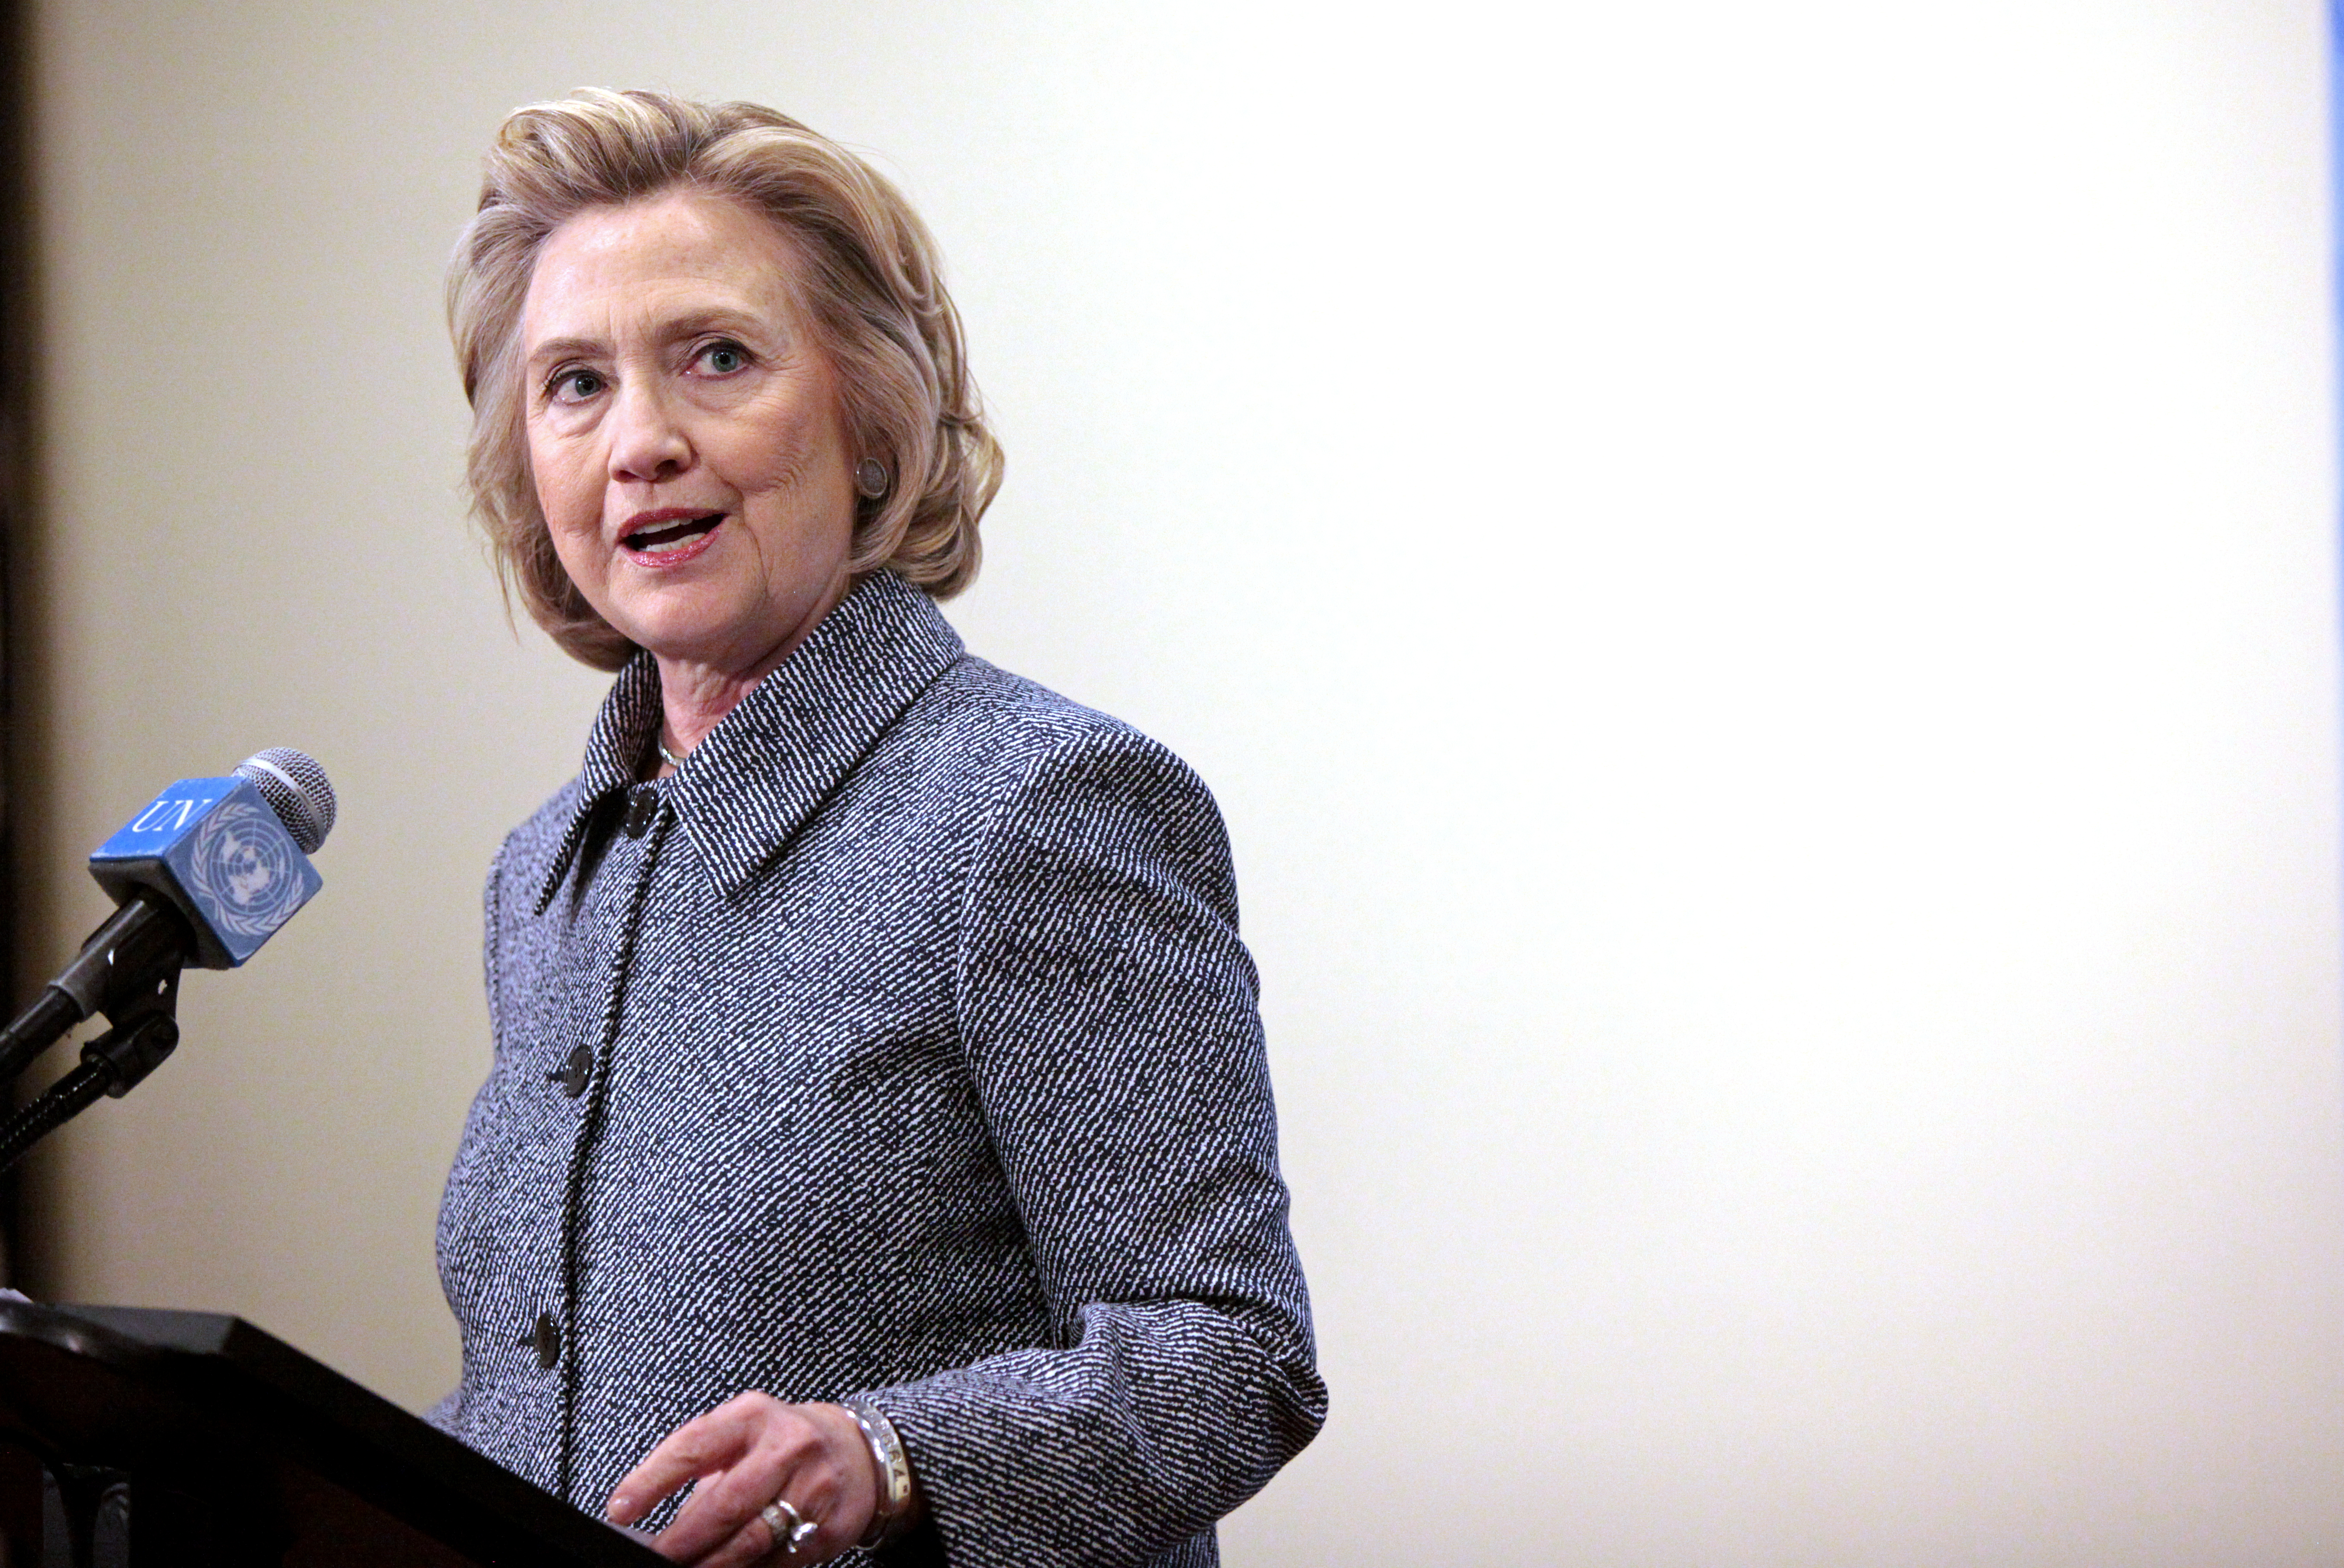 Former United States Secretary of State Hillary Clinton speaks to the media after keynoting a Women's Empowerment Event at the United Nations on March 10, 2015 in New York City.